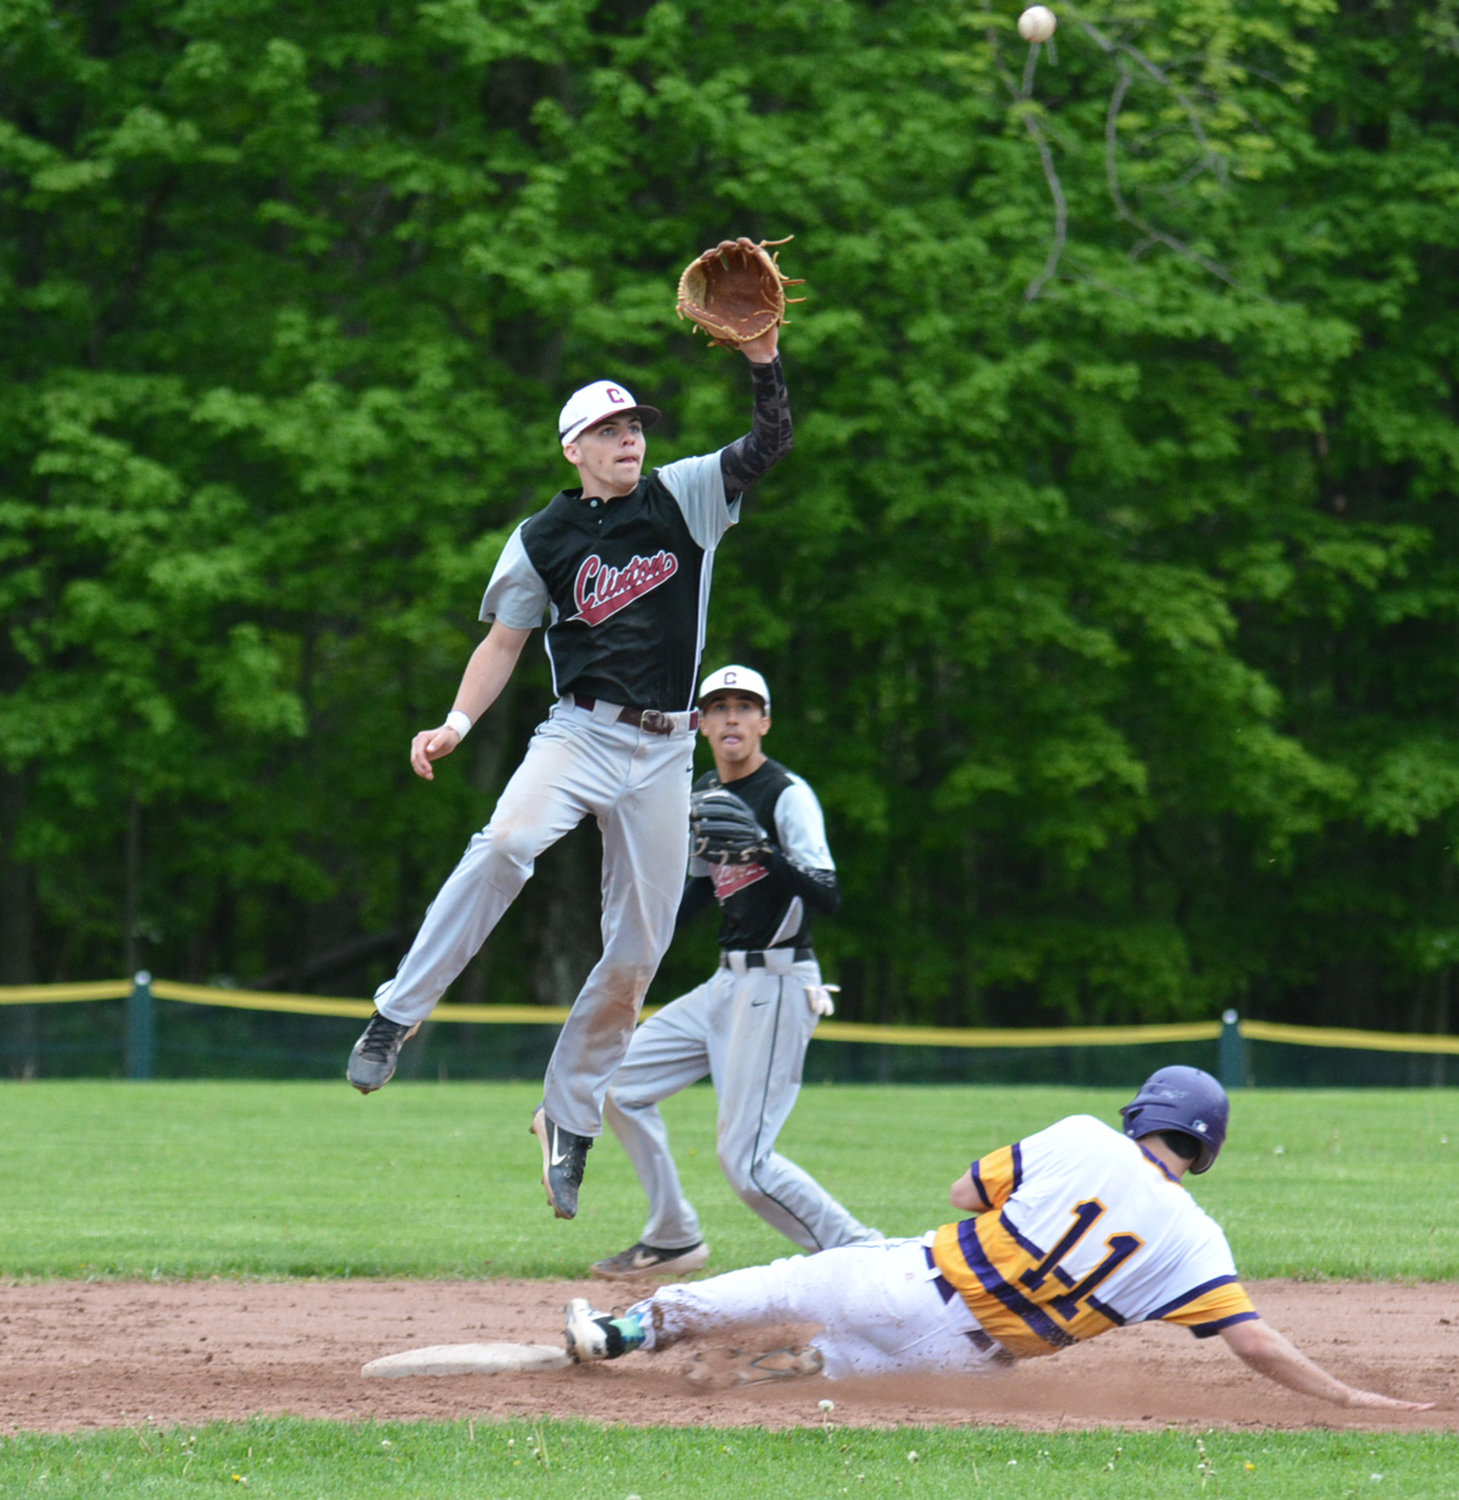 GOING UP GRAB — Clinton shortstop Tanner Deveans goes up for the high throw and misses the tag on Holland Patent's Mike Benedetto Friday, May 24 at Holland Patent High School.  It was the third meeting of these two teams this season and Holland Patent holds the top spot in the conference. The Golden Knights were 2-0 over the Warriors this season, but Clinton had their night and came away with a 5-3 win in Center State Conference play to go up 5-4 in the division and 8-8 overall.